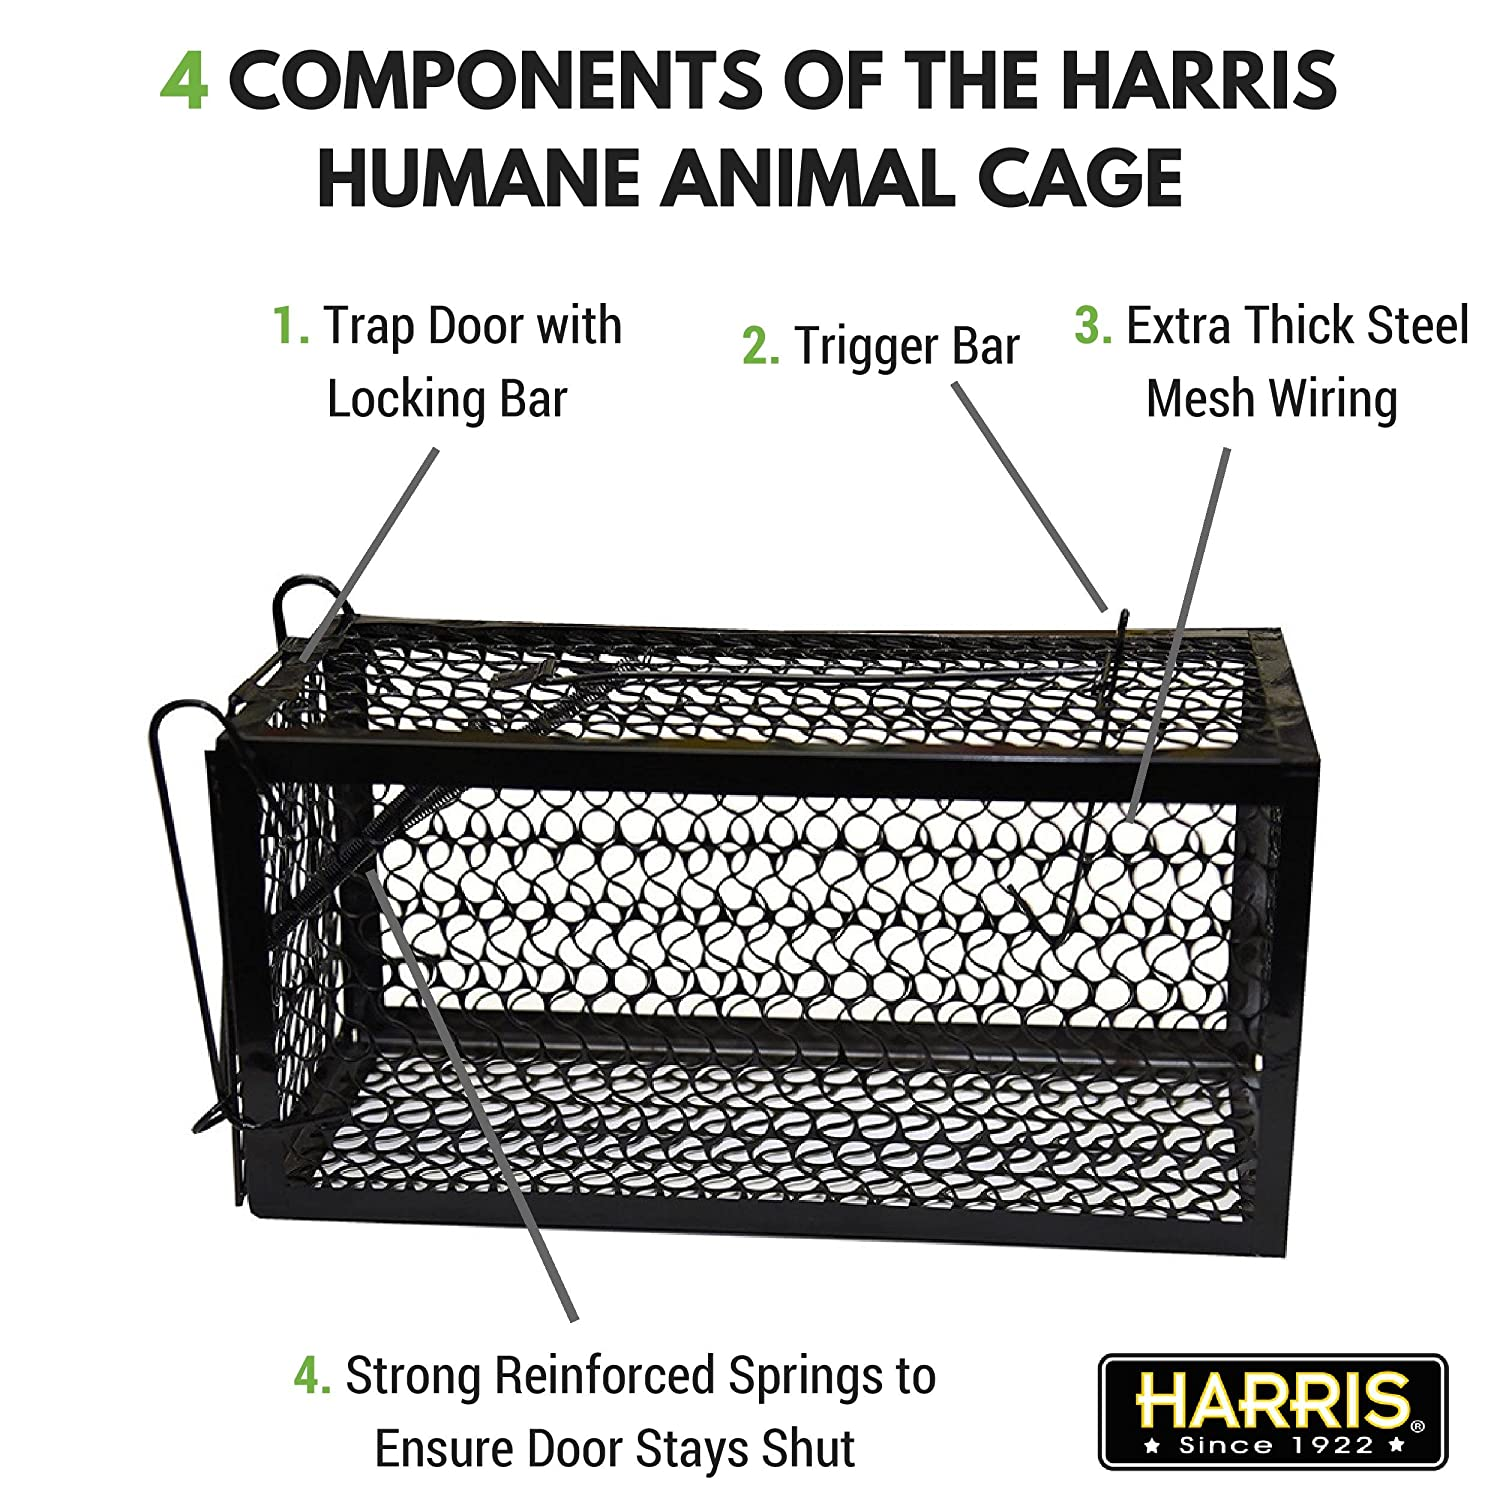 Amazon.com : Harris Catch & Release Humane Cage Trap for Rats ...